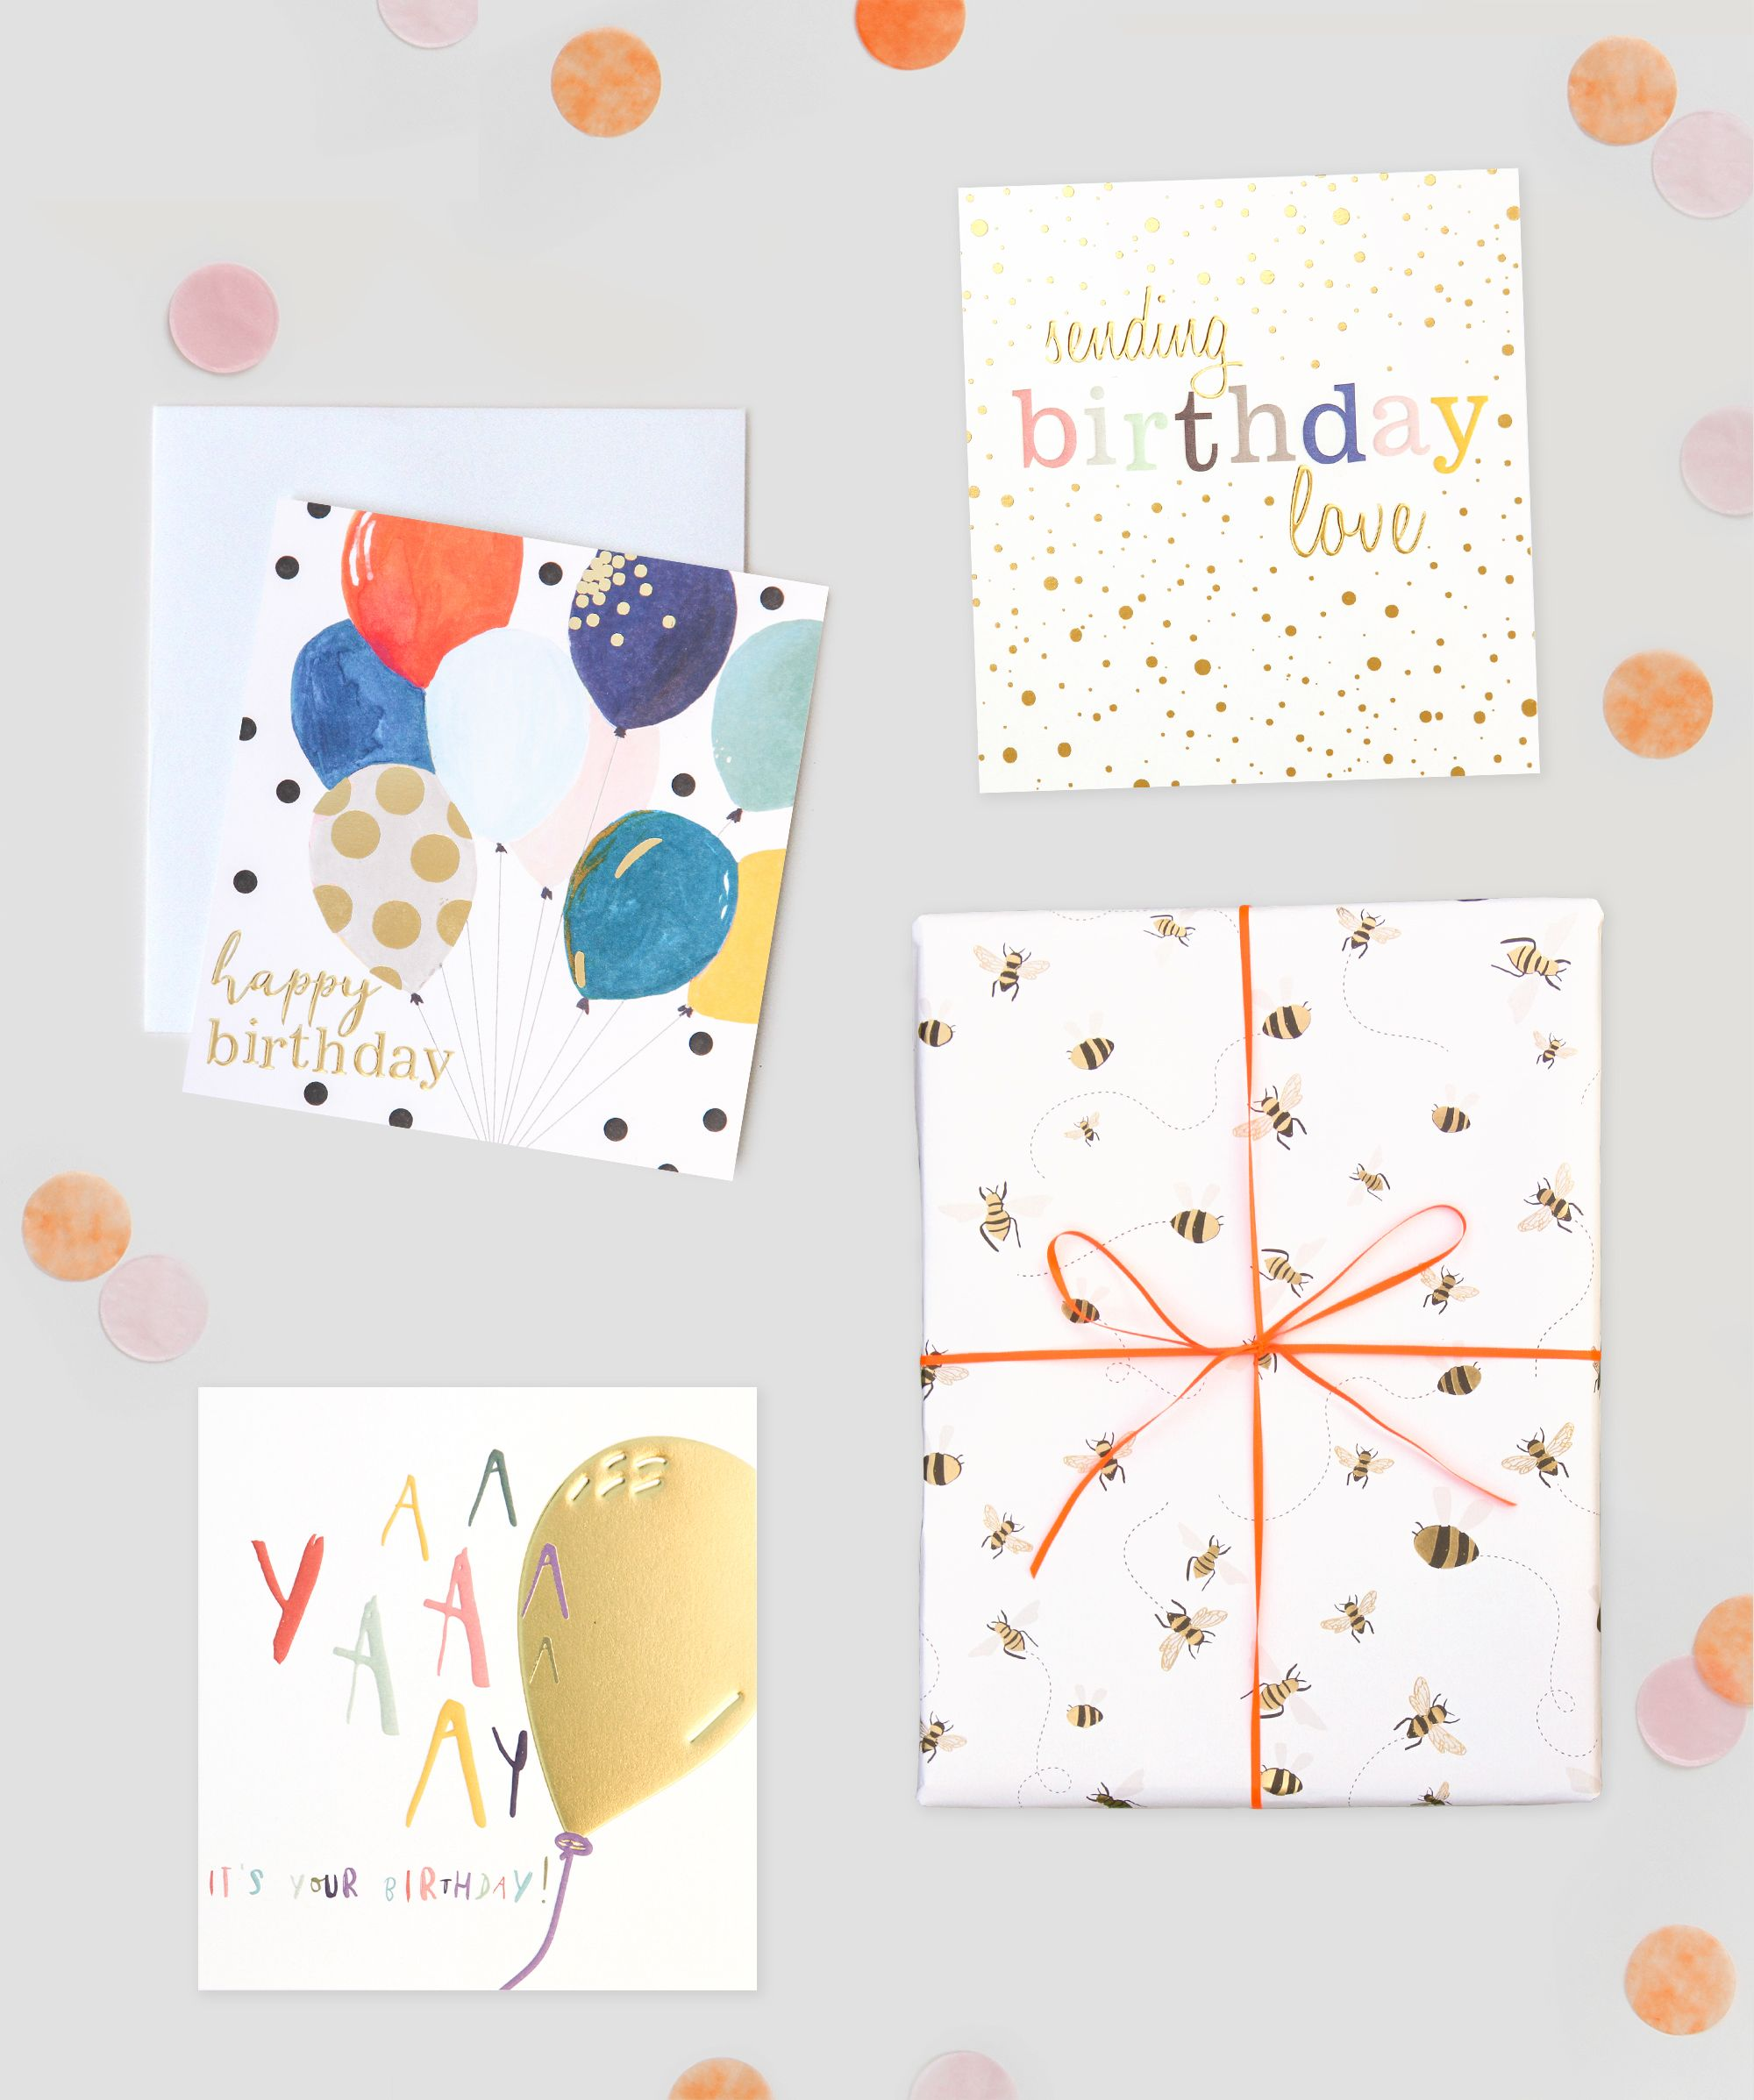 Send Birthday Wishes In Style With Our Huge Range Of Cards To Celebrate Any Age